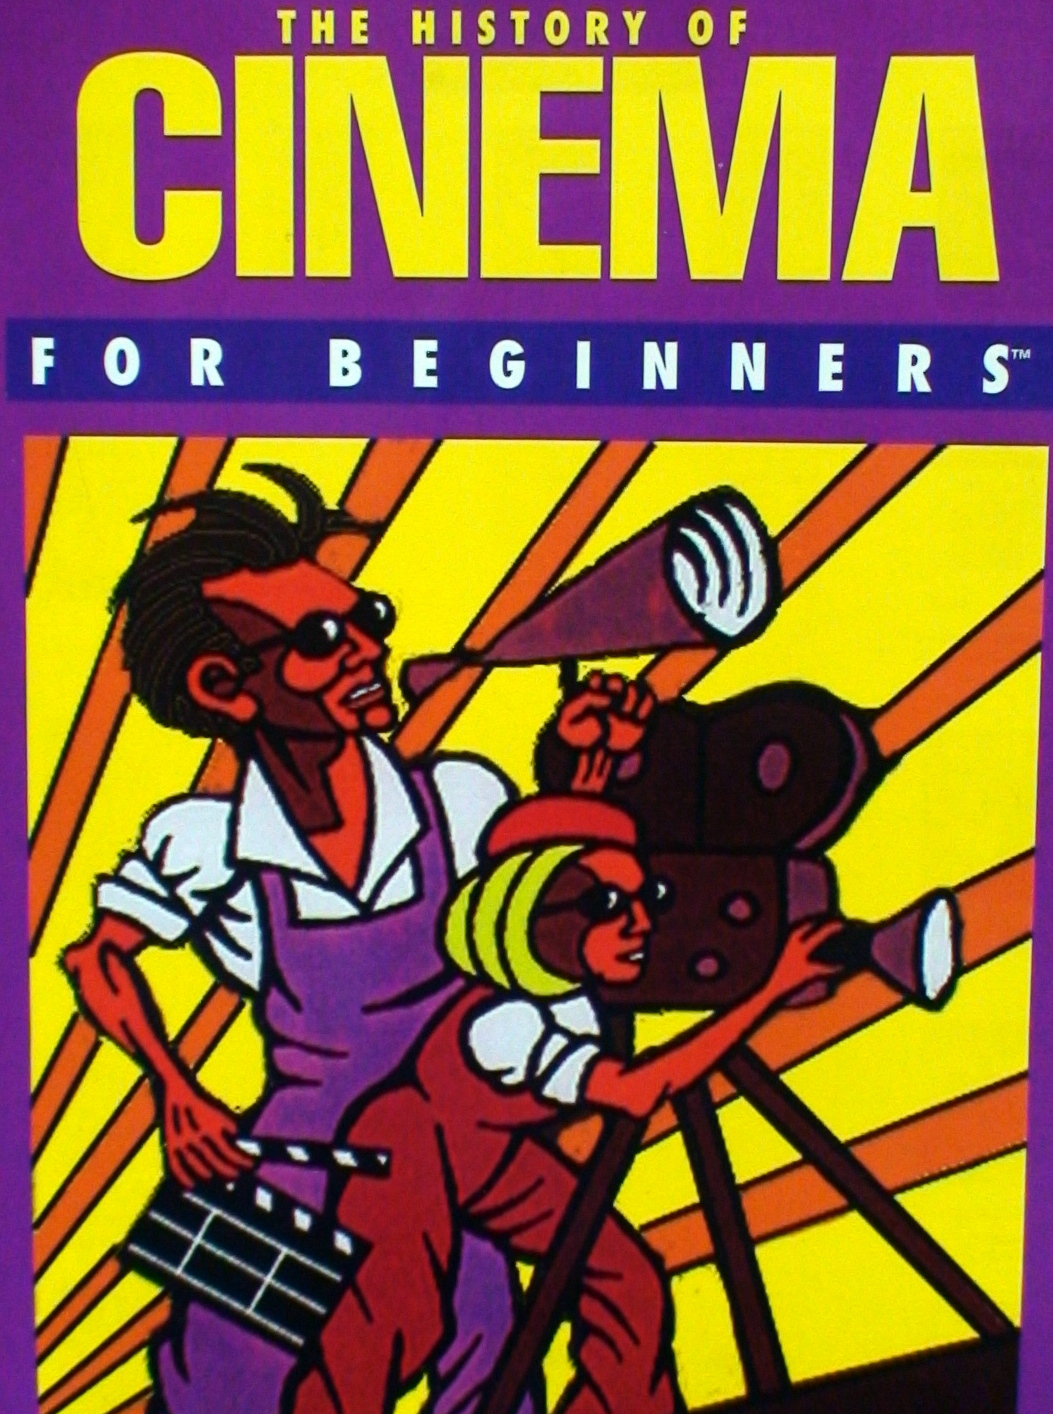 The History of Cinema for Beginners